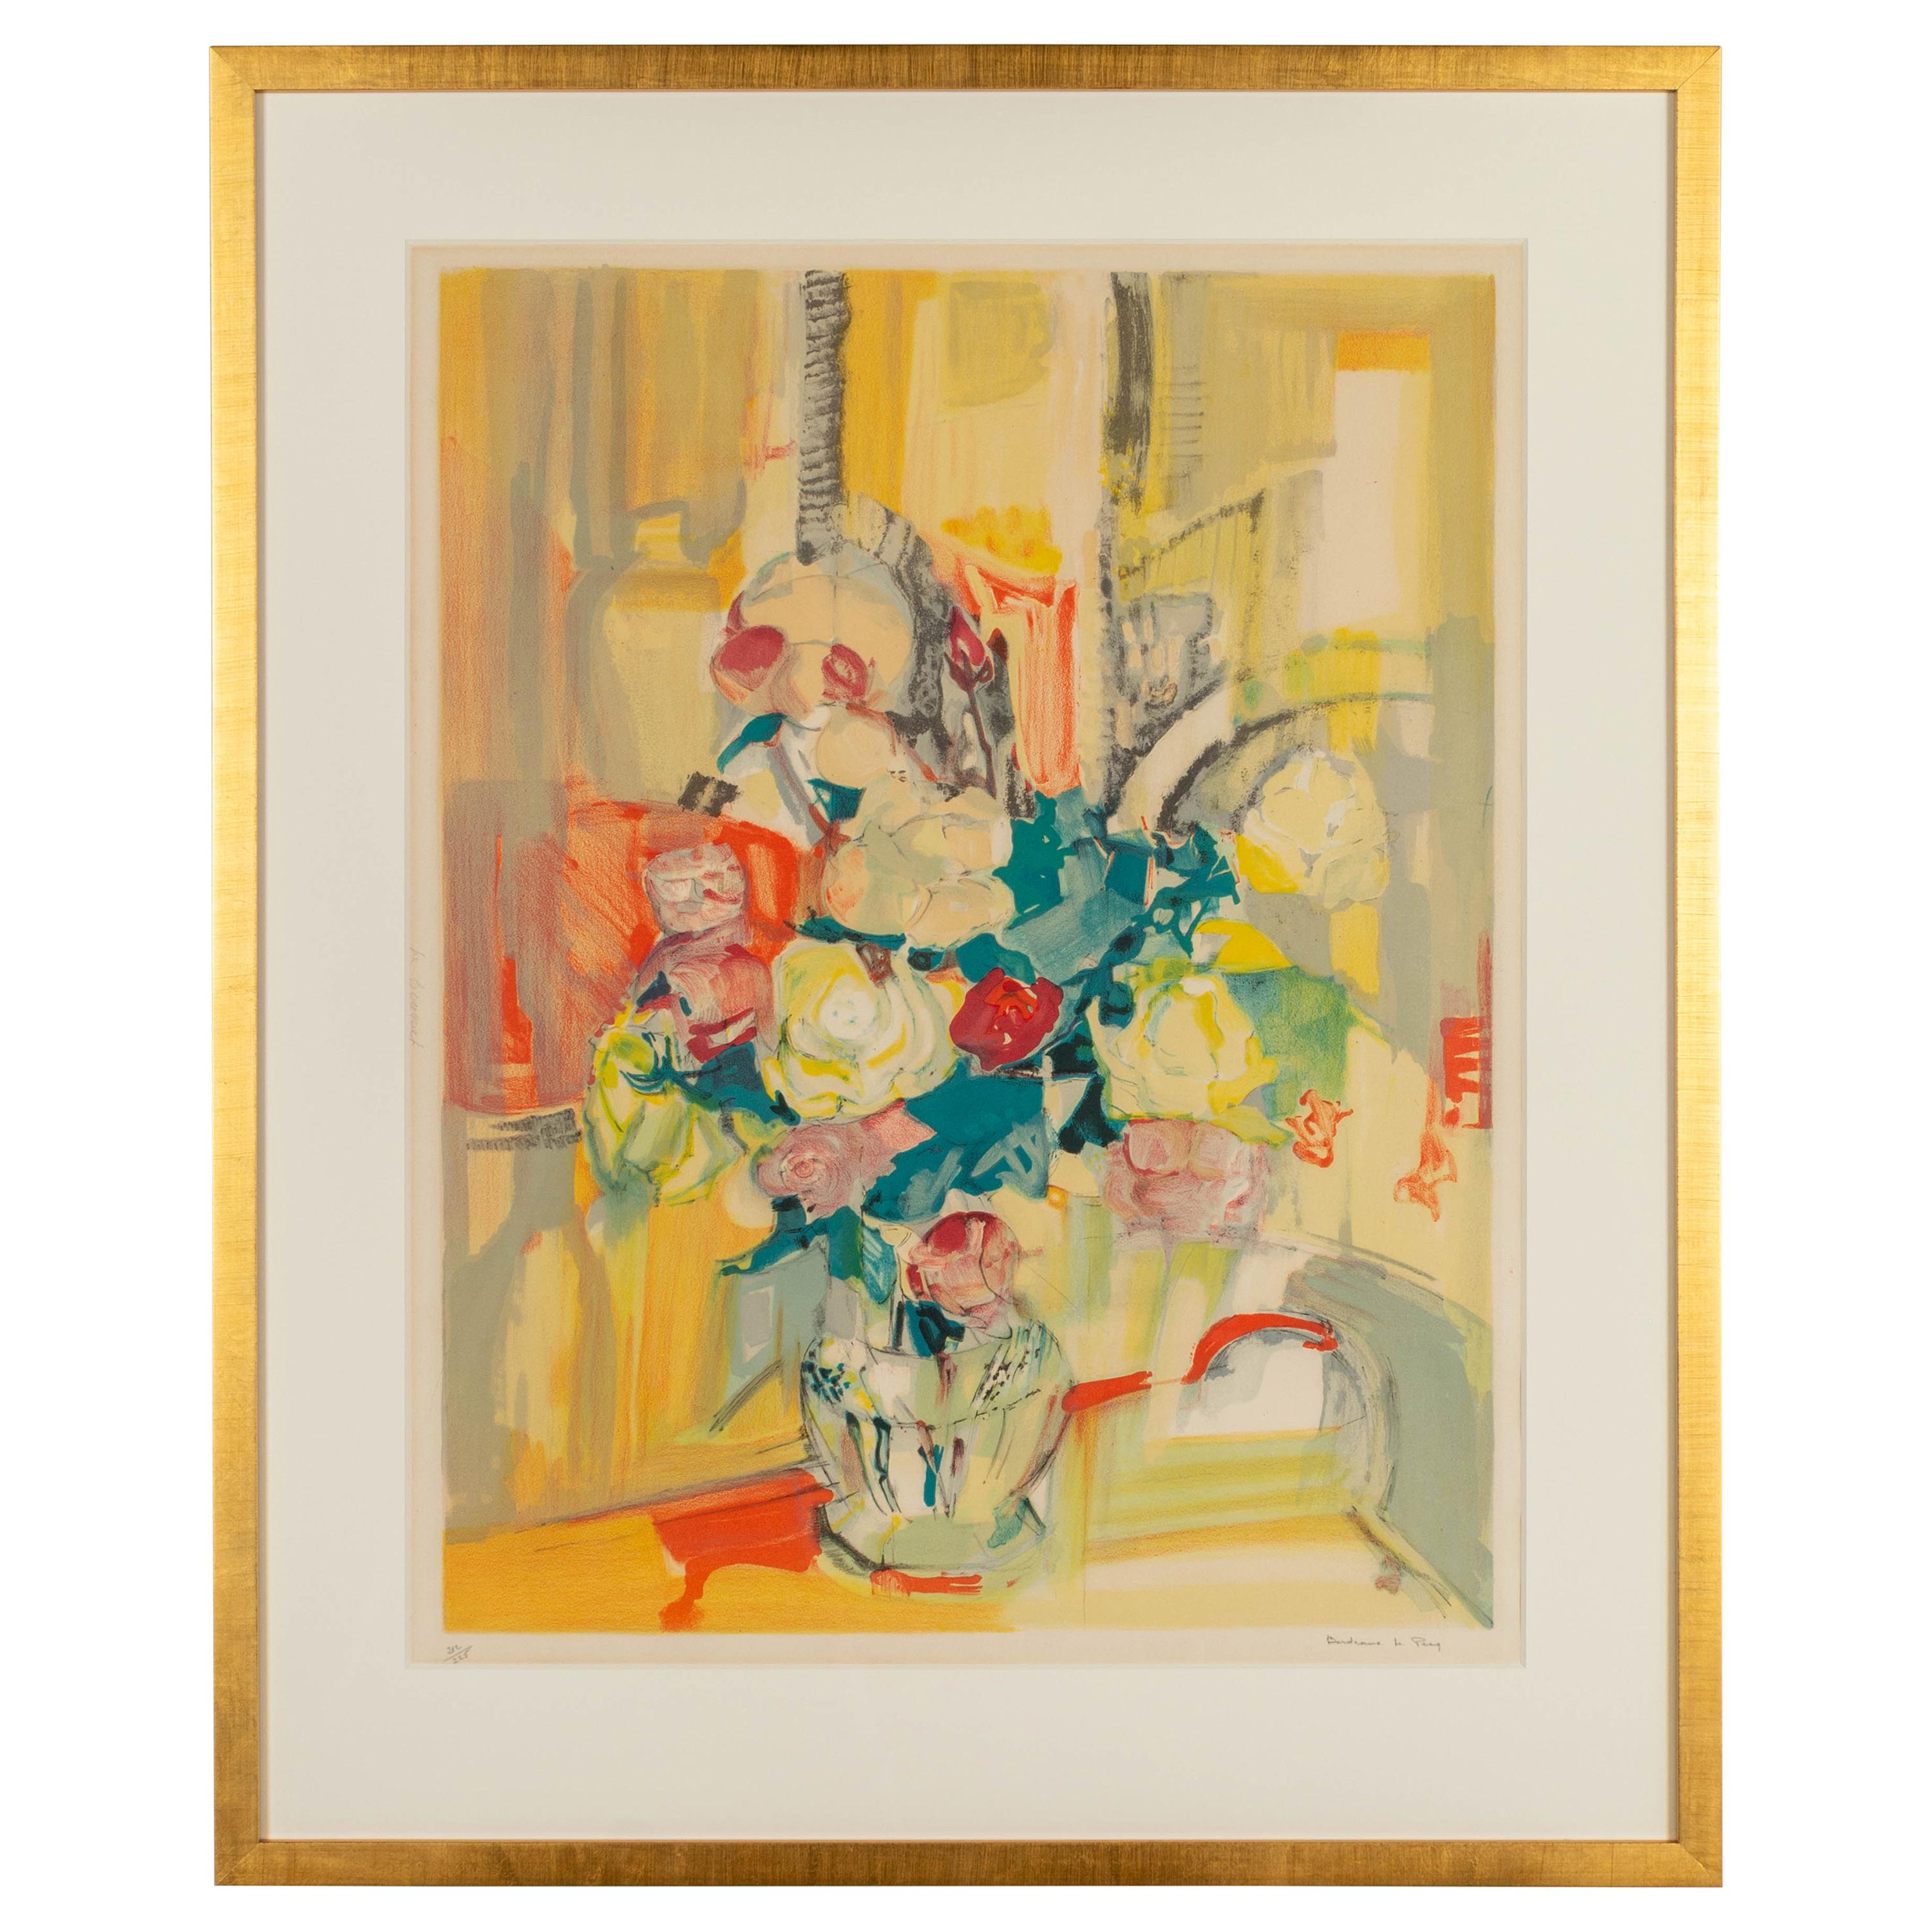 Framed Lithograph by Parisian Artist Le Pho